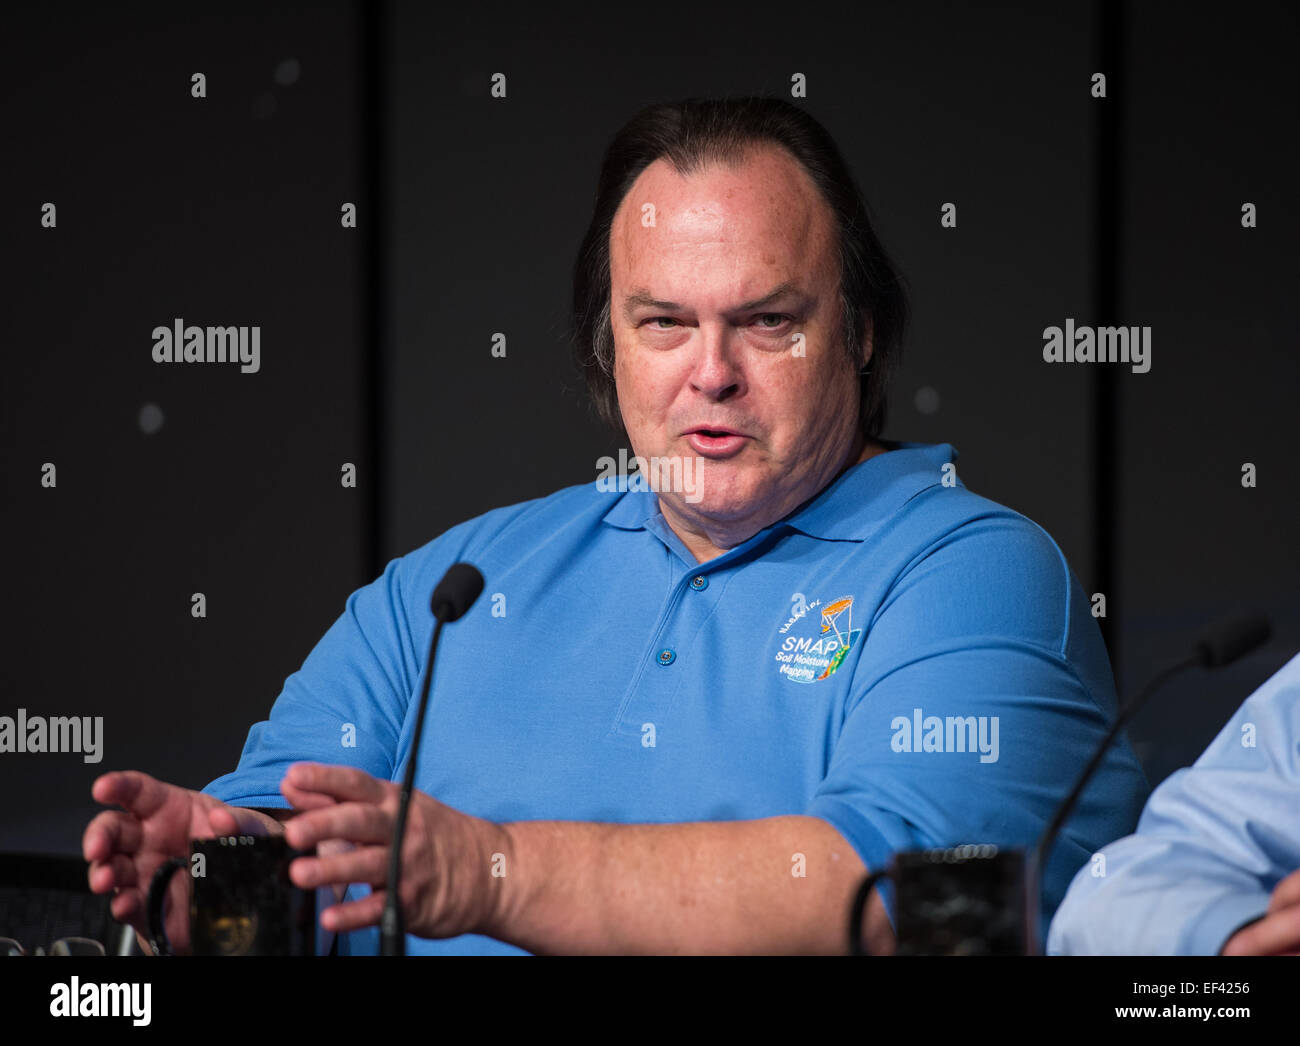 Kent Kellogg, SMAP project manager at NASA's Jet Propulsion Laboratory (JPL) in Pasadena, CA, speaks during a briefing - Stock Image